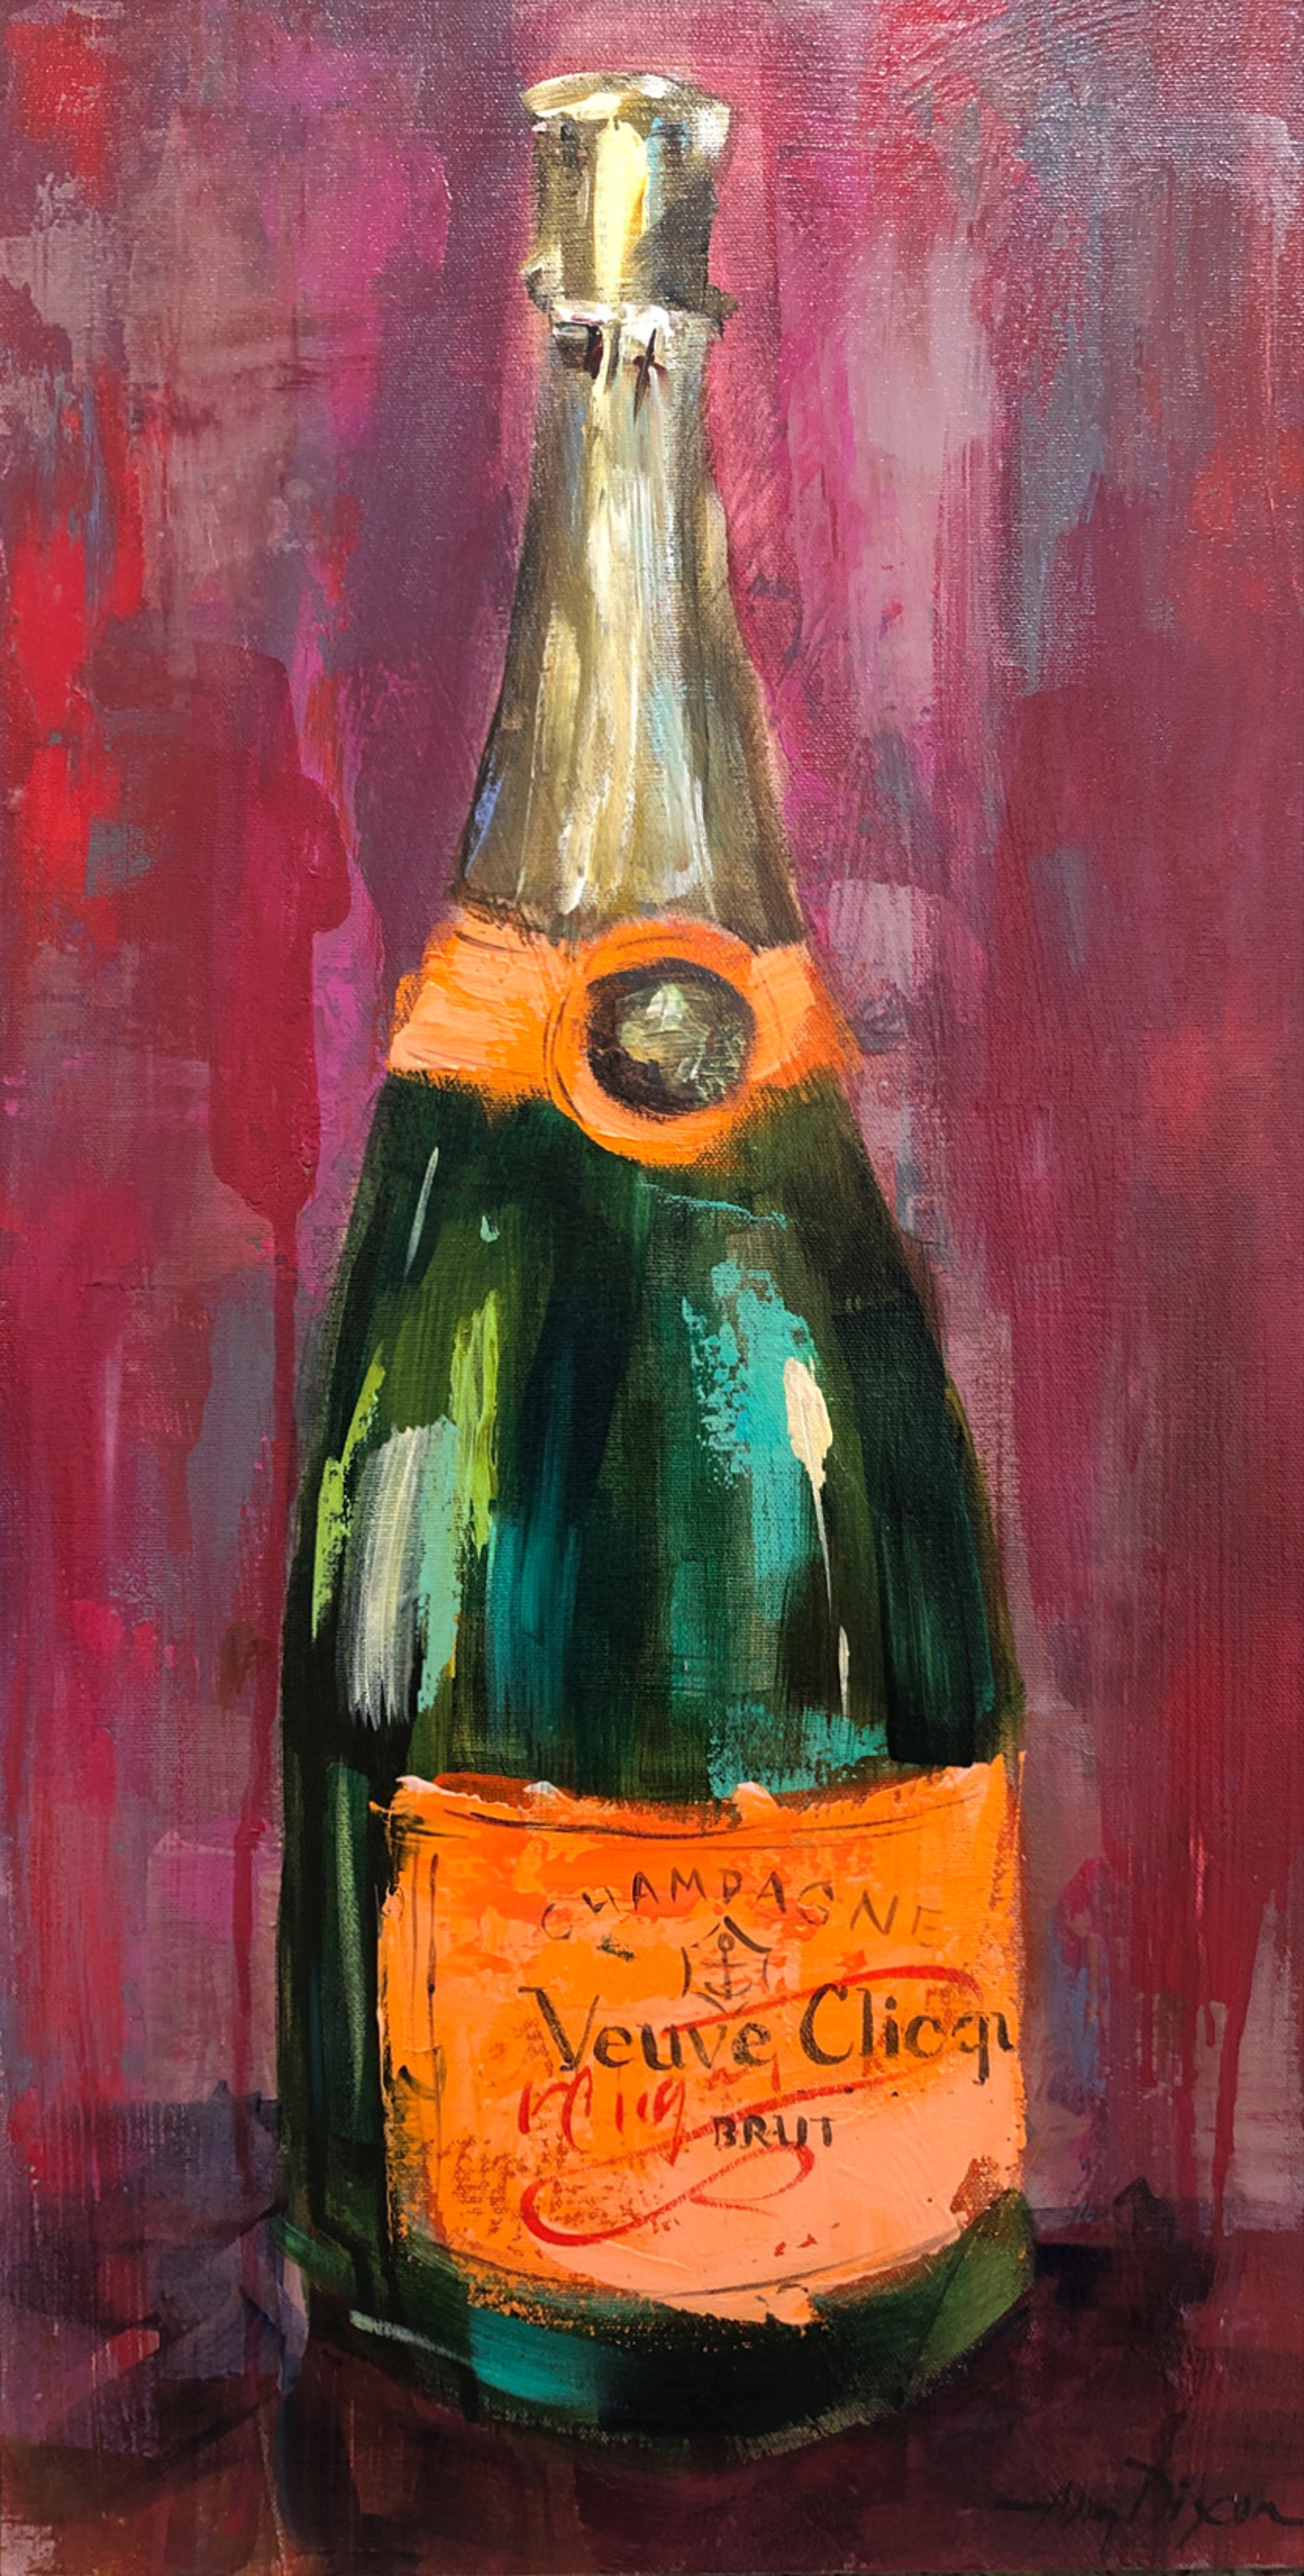 Veuve You Too! by Amy Dixon